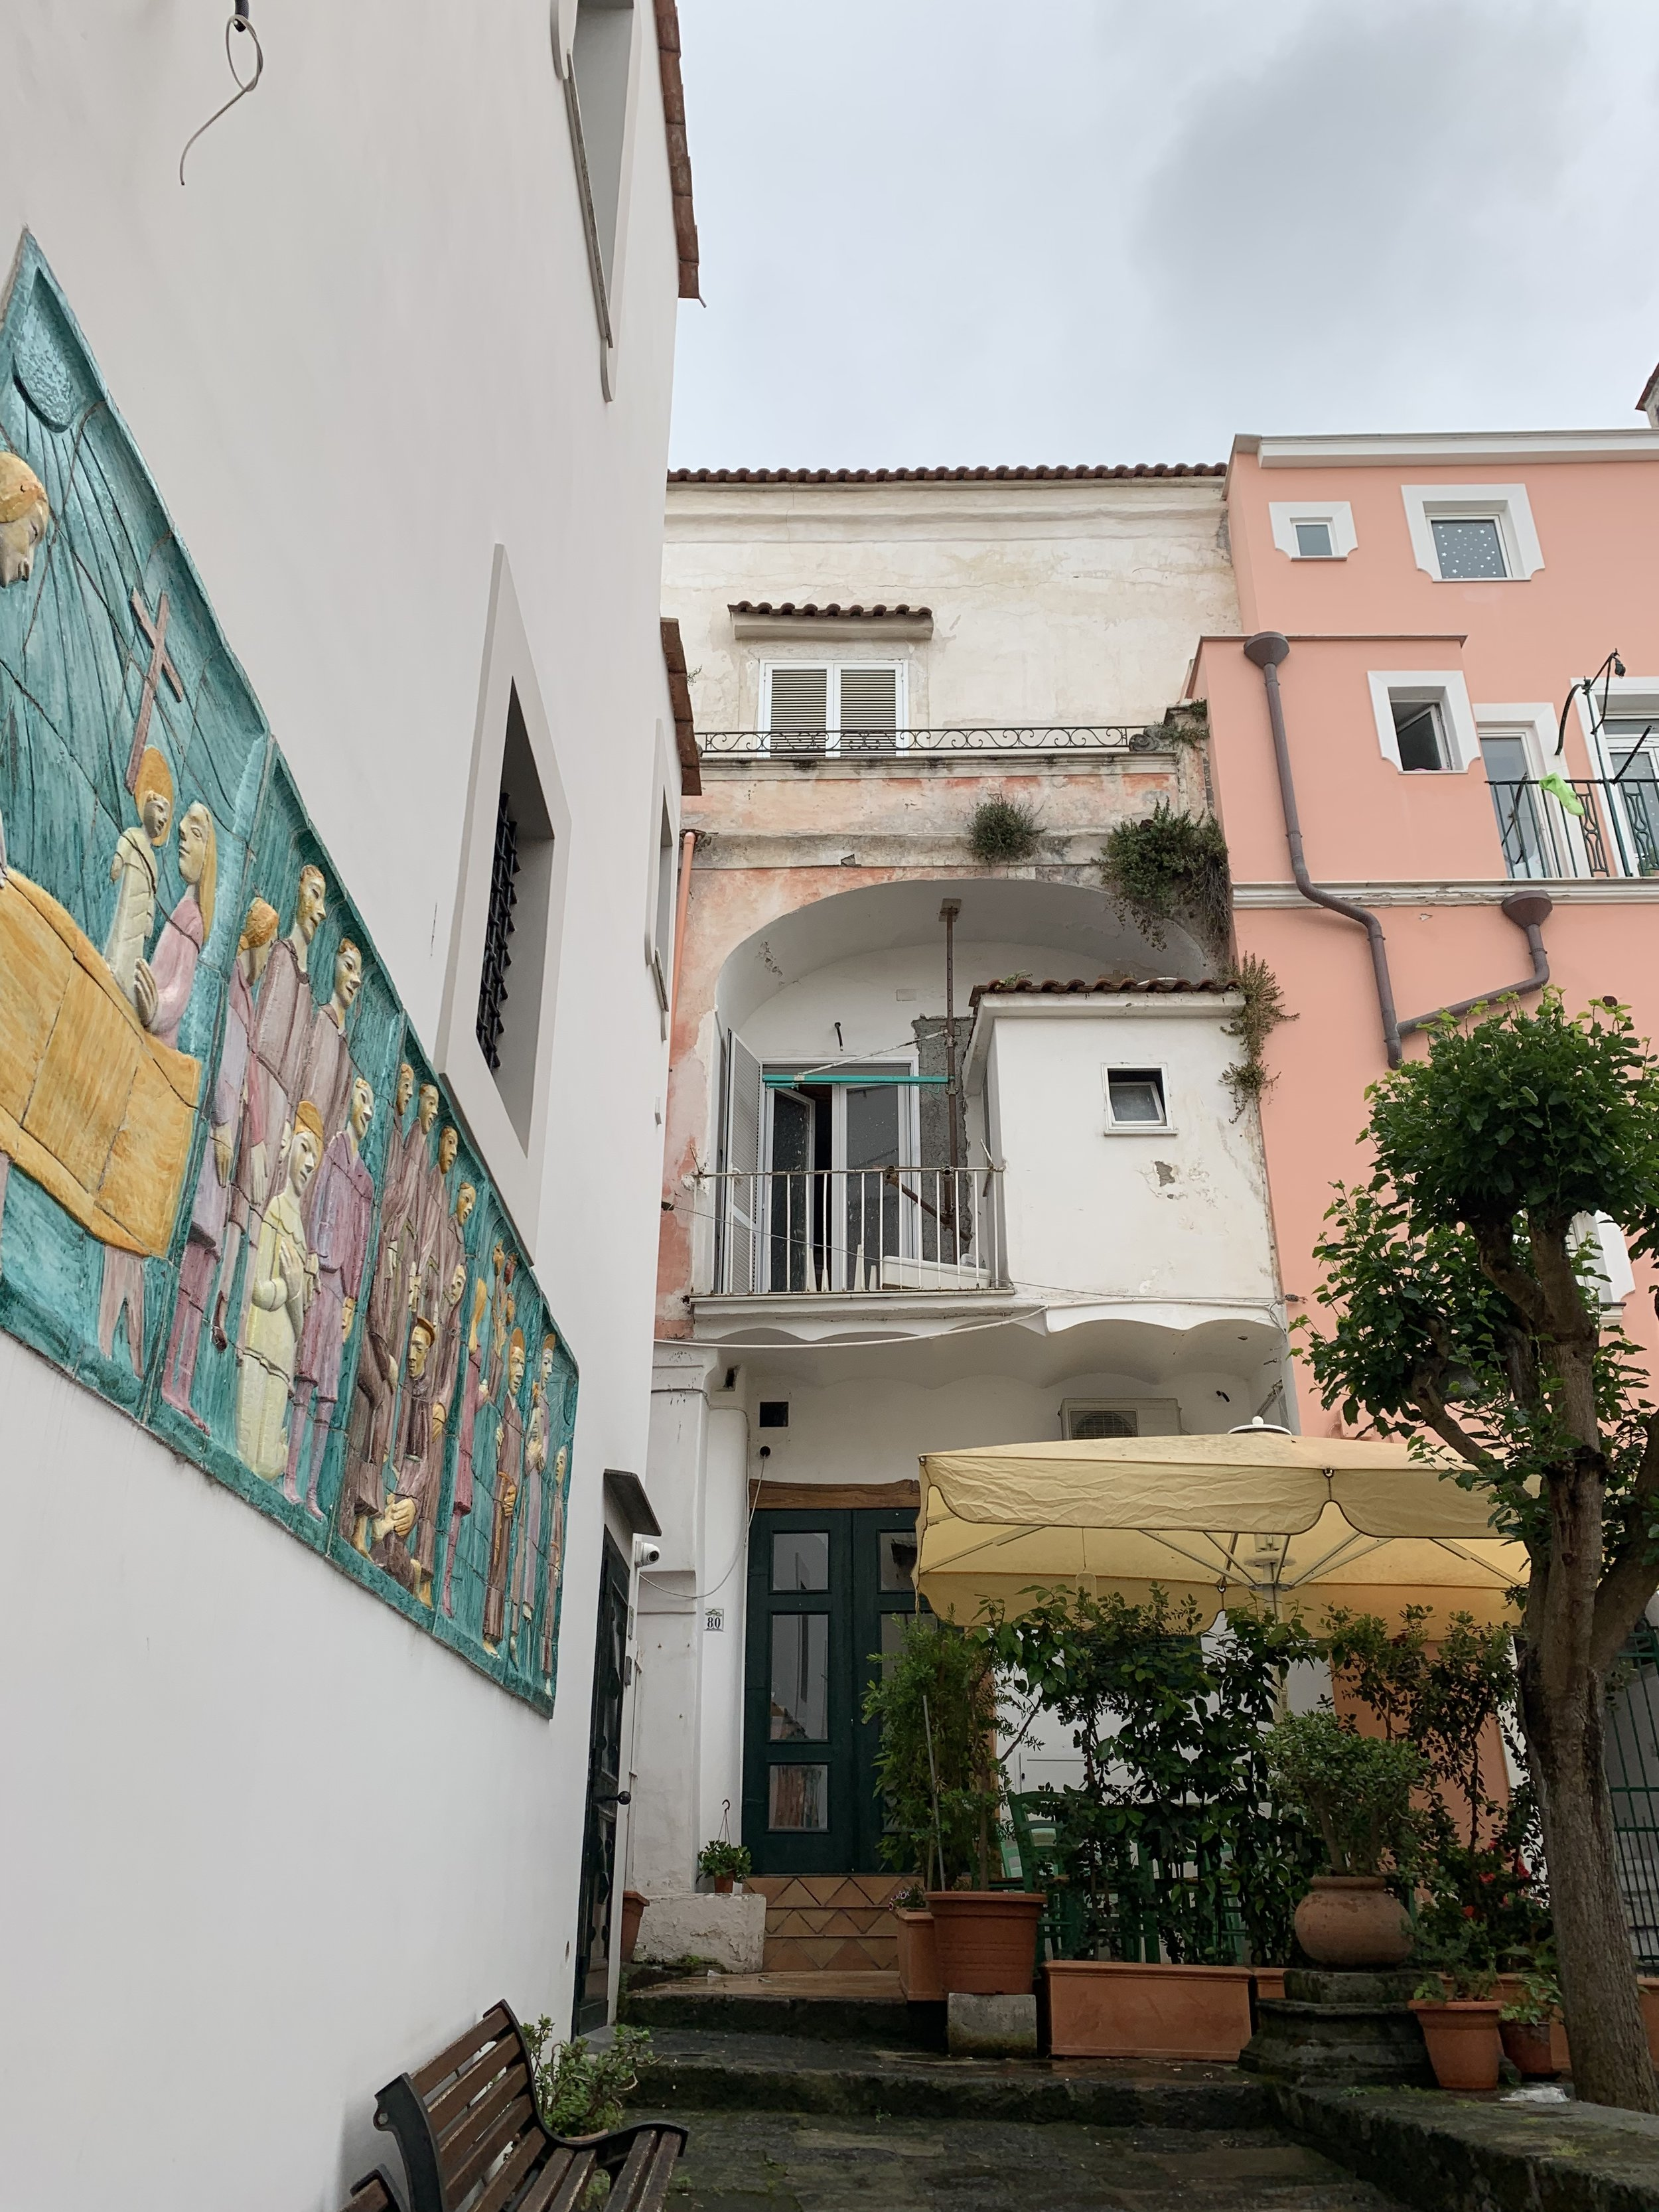 Pink and white buildings in town | EAT.PRAY.MOVE Yoga Retreats | Ischia, Italy